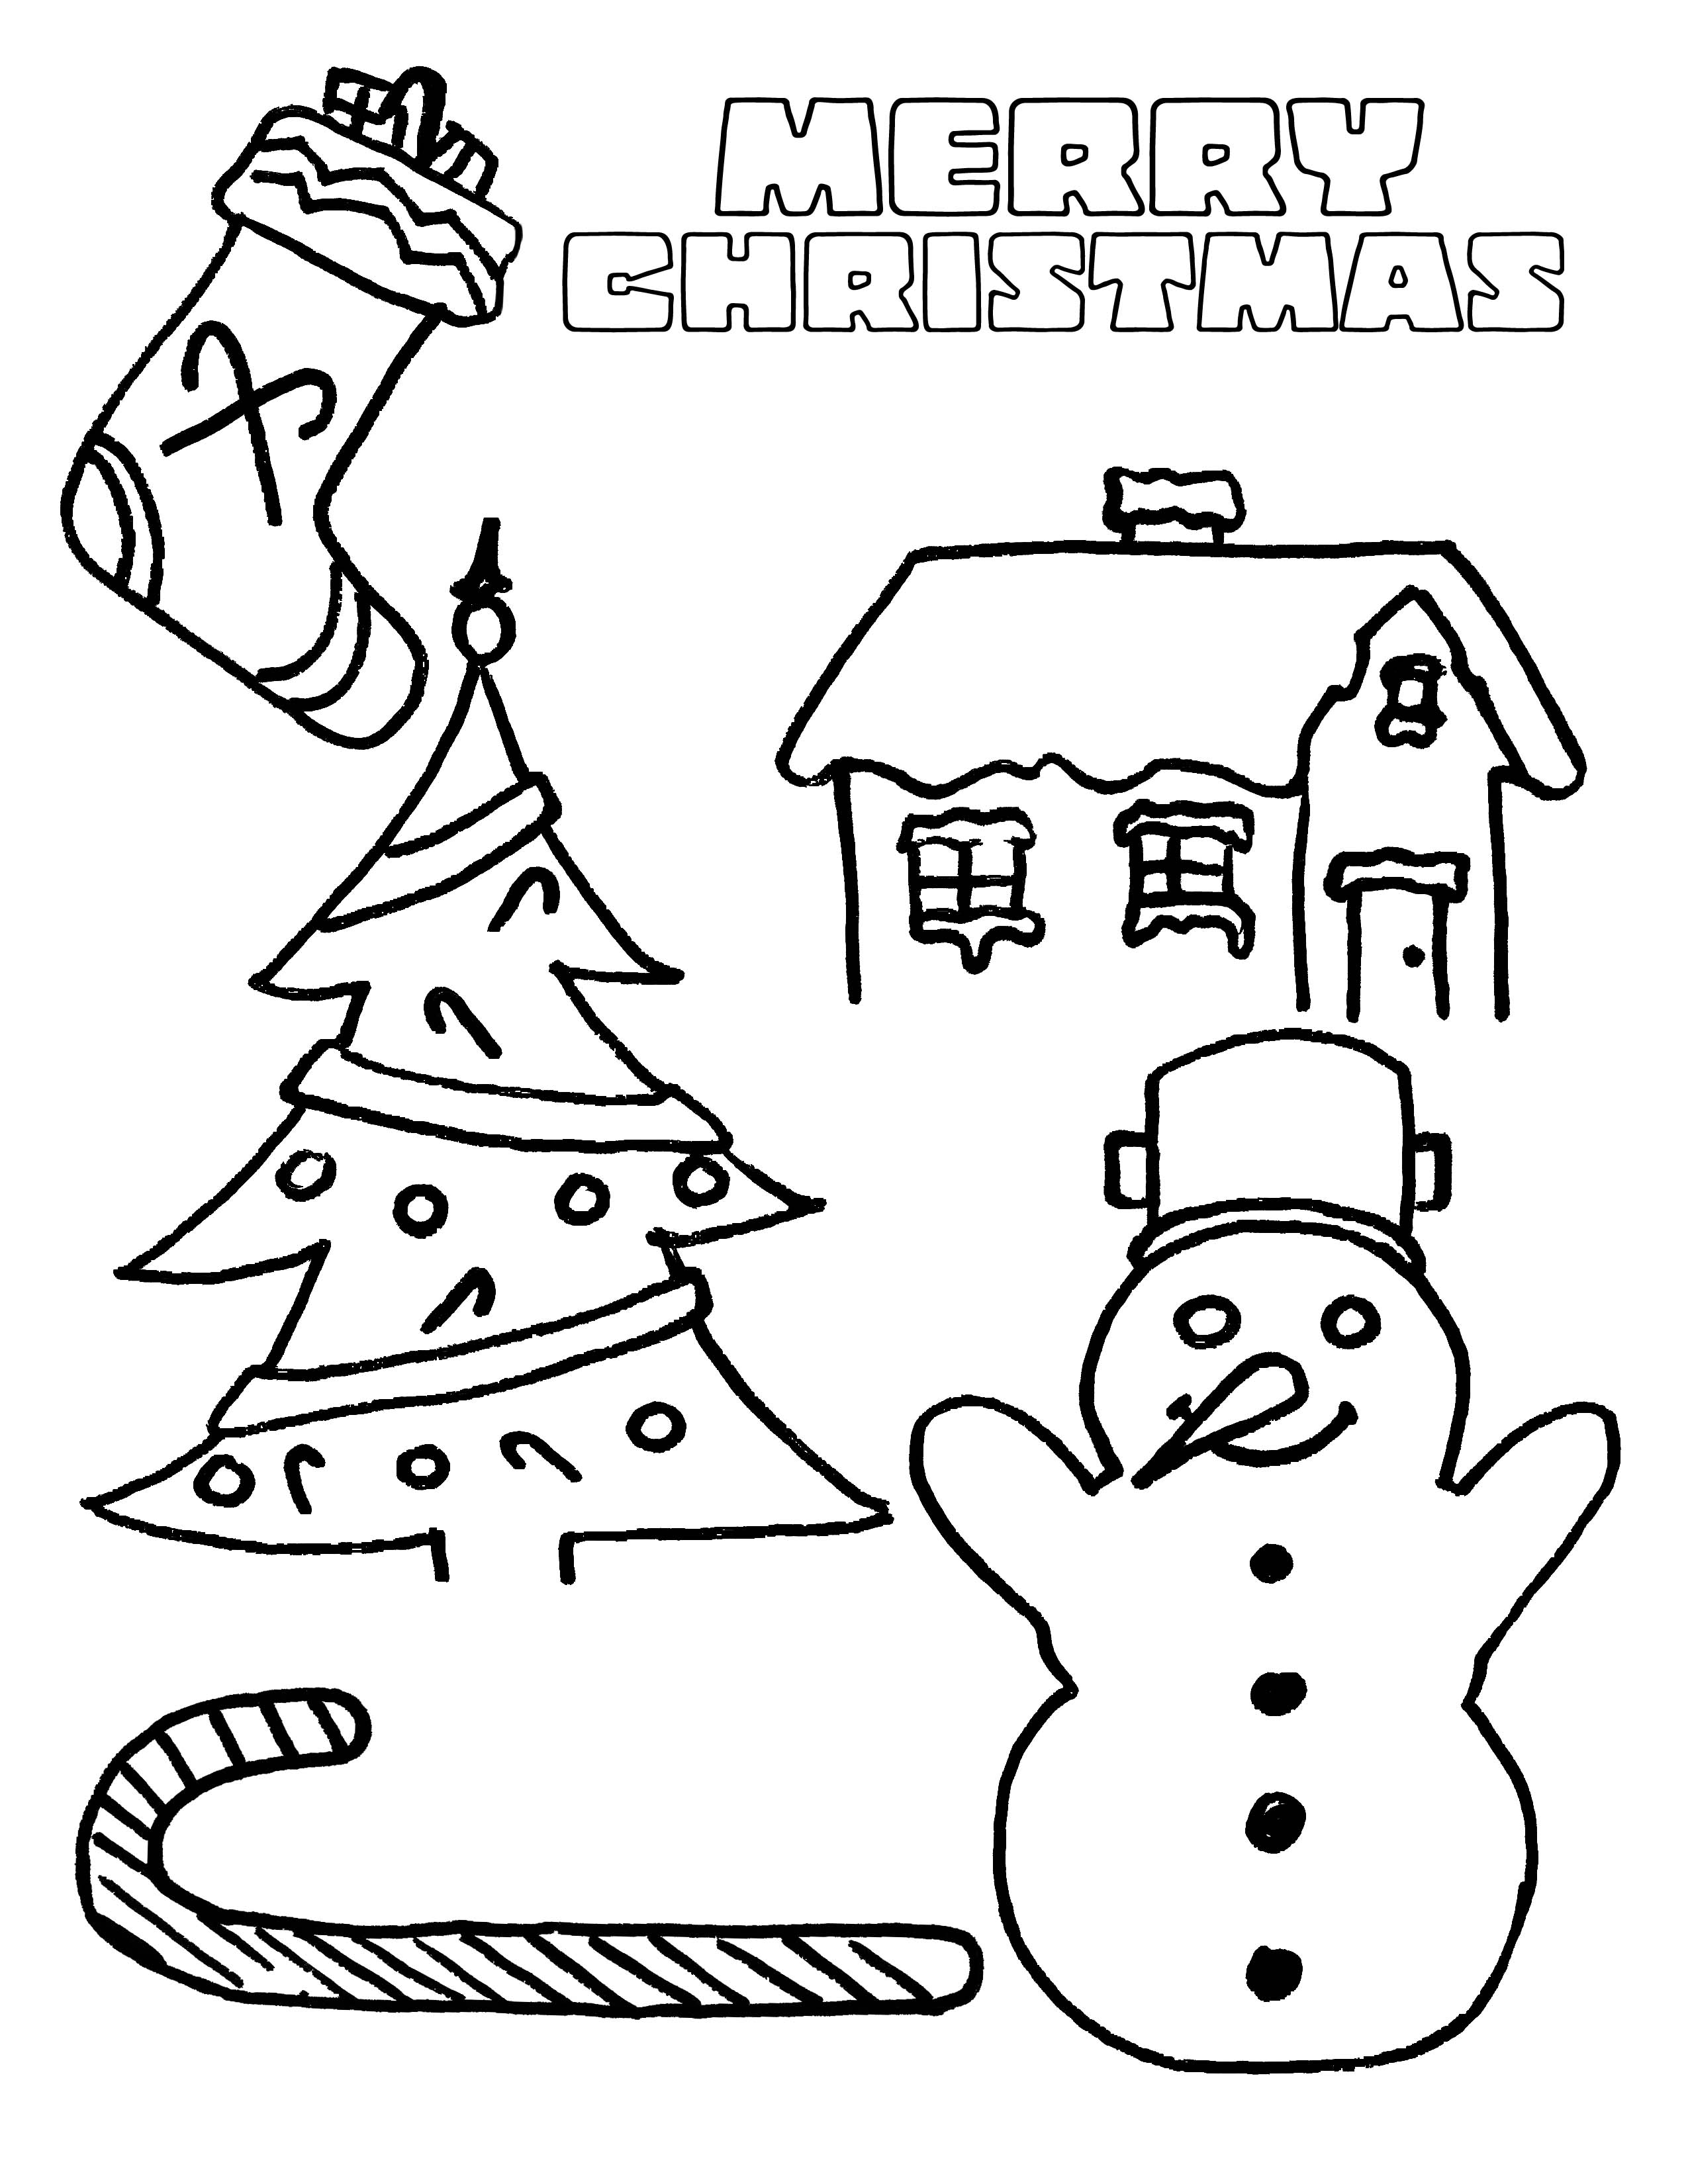 free printable christmas coloring sheets for toddlers party simplicity free christmas coloring page for kids sheets toddlers christmas for printable free coloring